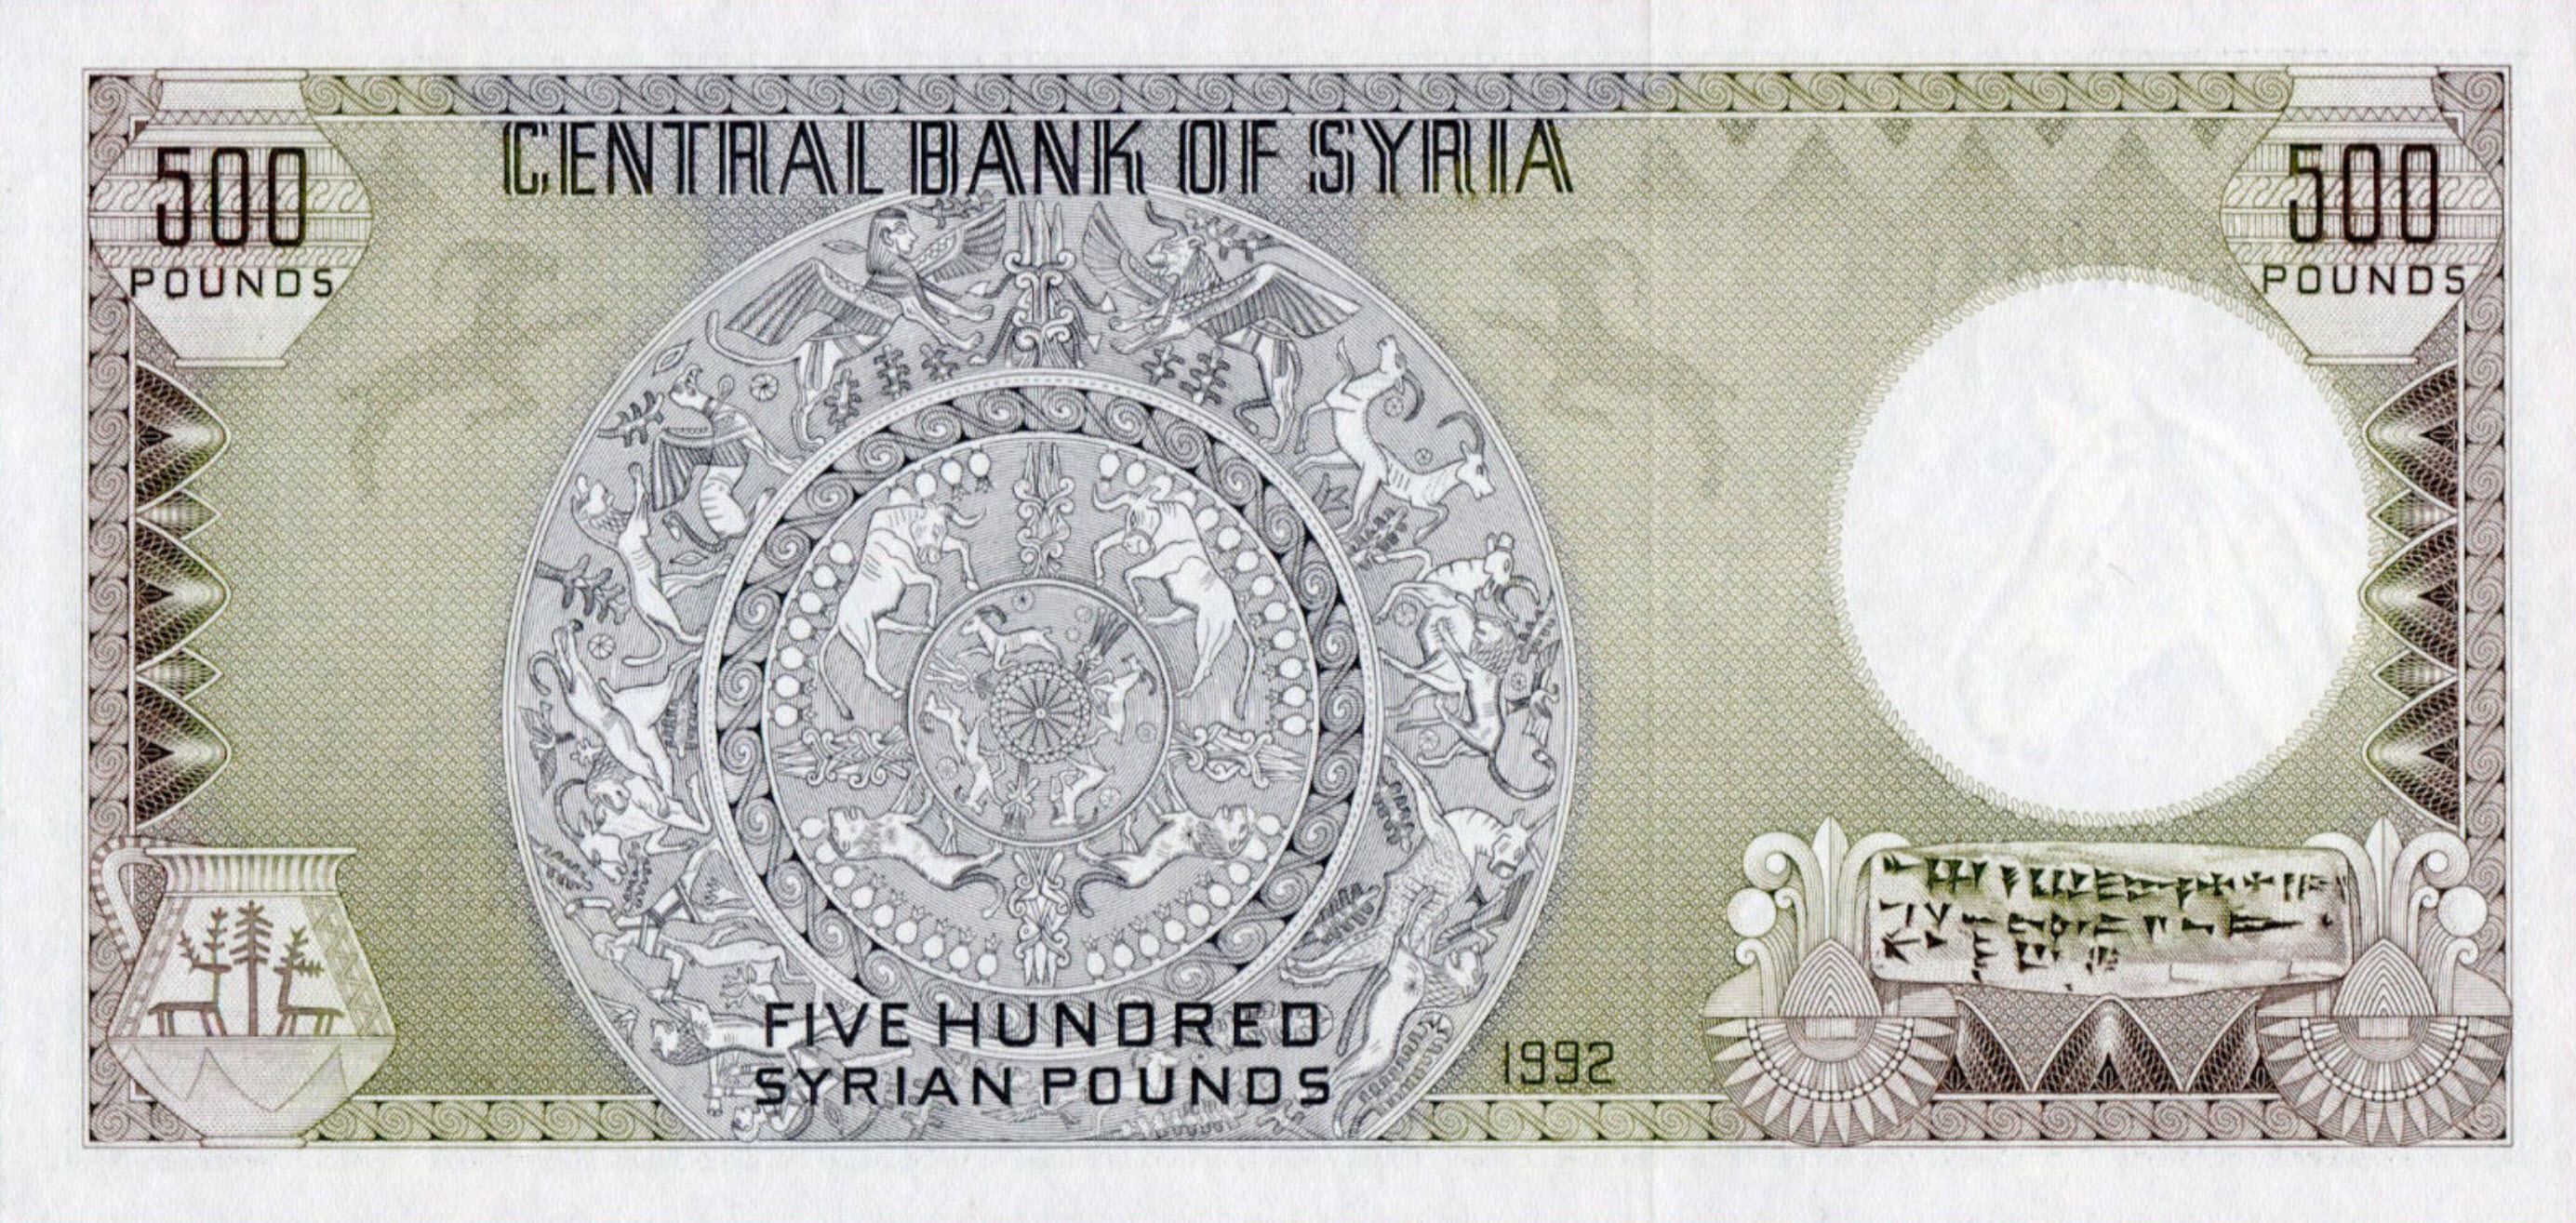 P105f Syria 500 Pounds Year 1992